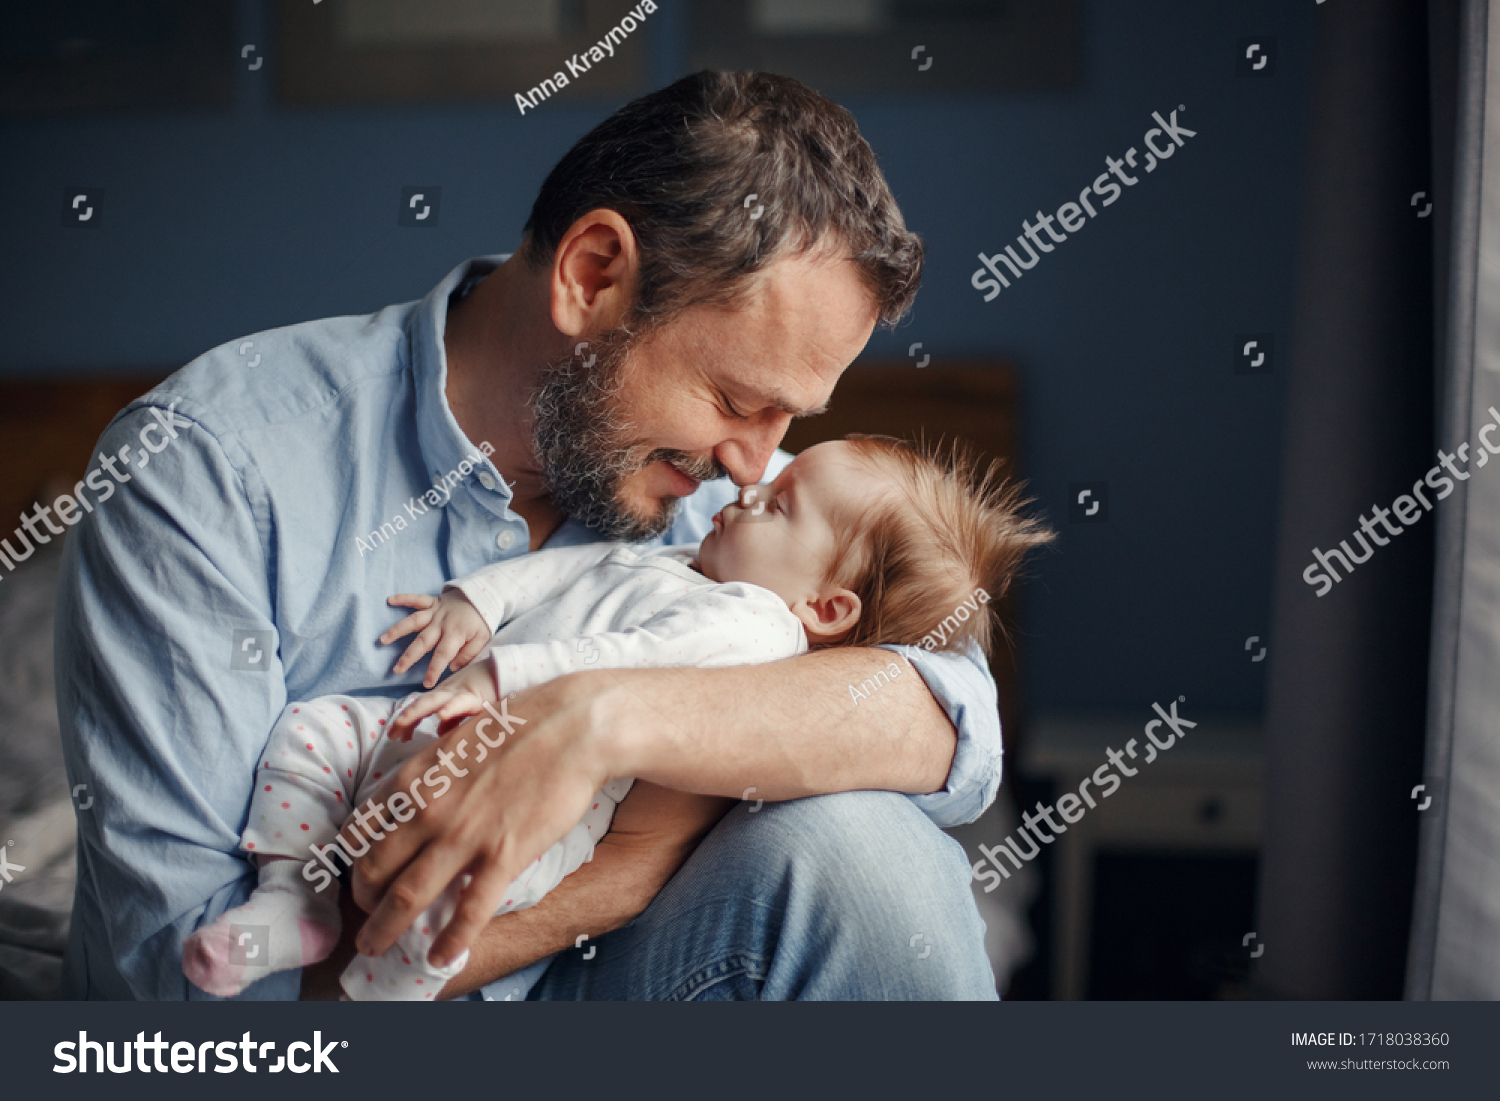 Middle age Caucasian father kissing sleeping newborn baby girl. Parent holding rocking child daughter son in hands. Authentic lifestyle parenting fatherhood moment. Single dad family home life. #1718038360